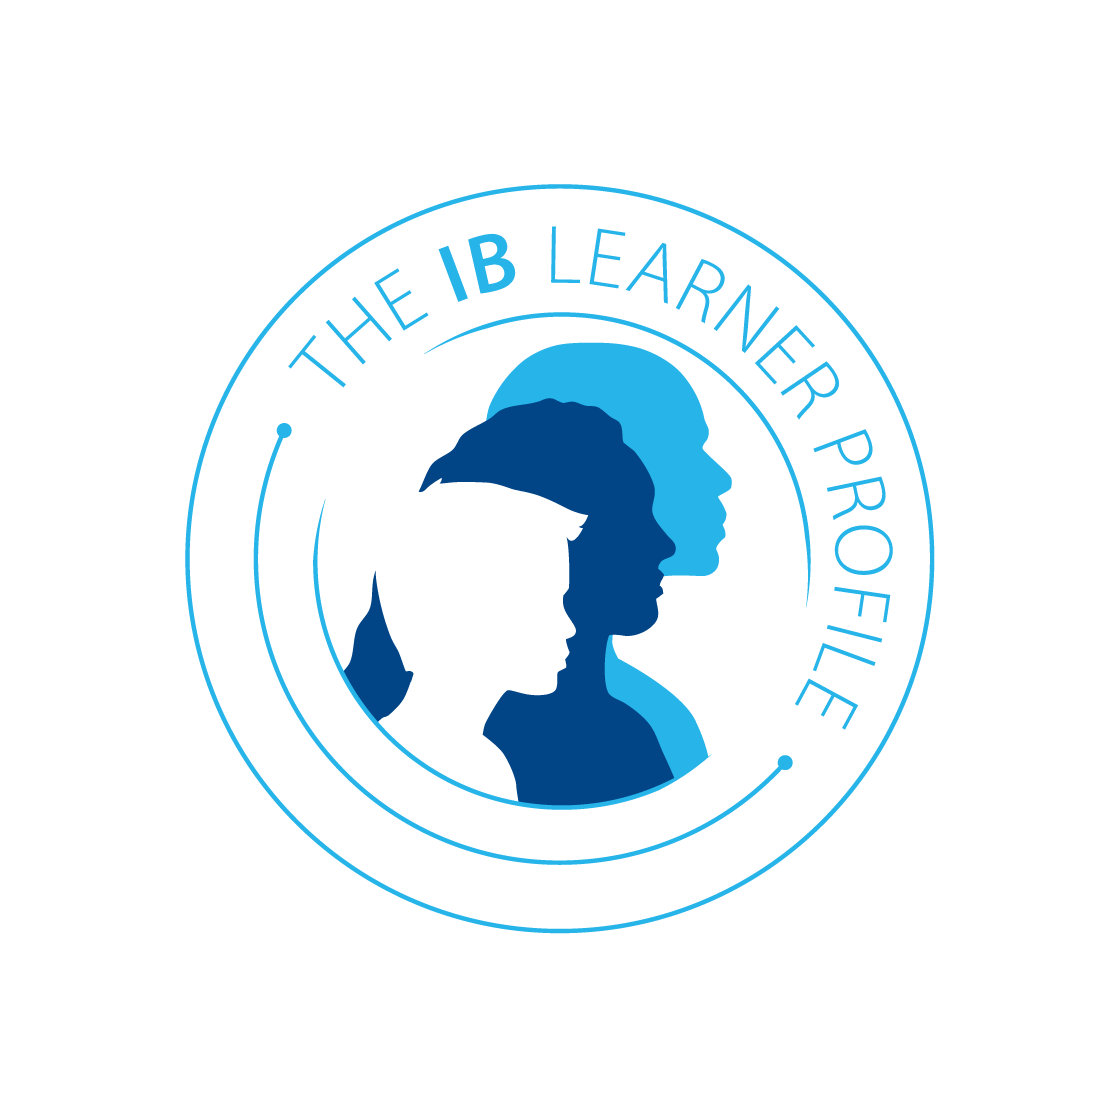 Ib clipart jpg library library Logos and programme models - International Baccalaureate® jpg library library